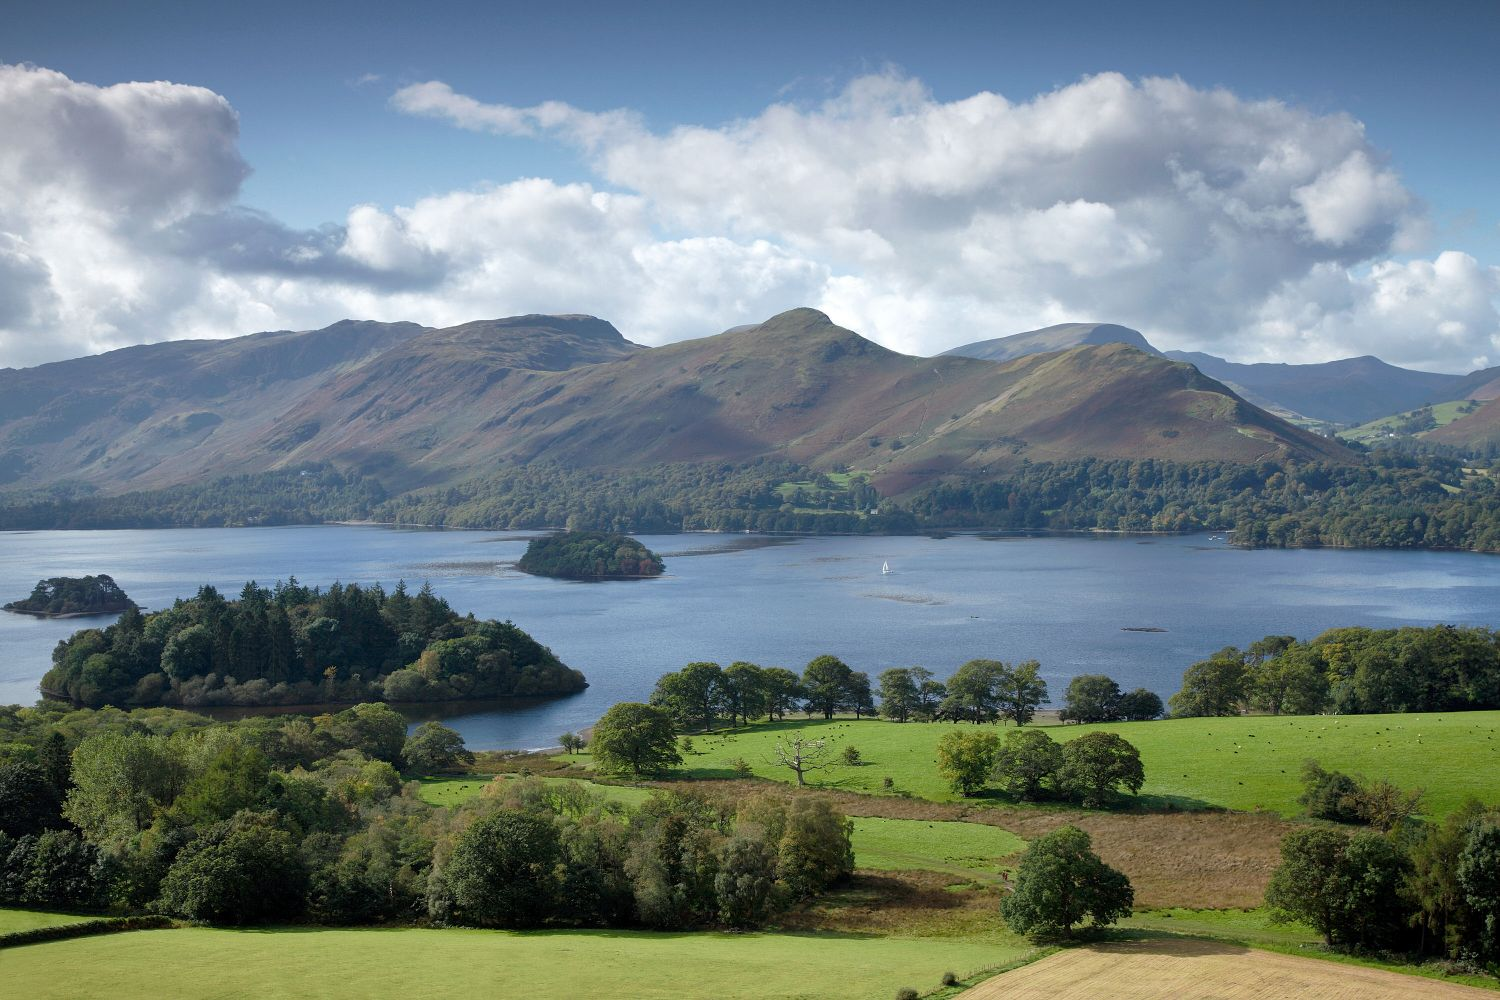 Catbells and Maiden Moor seen across Derwentwater from Castlehead